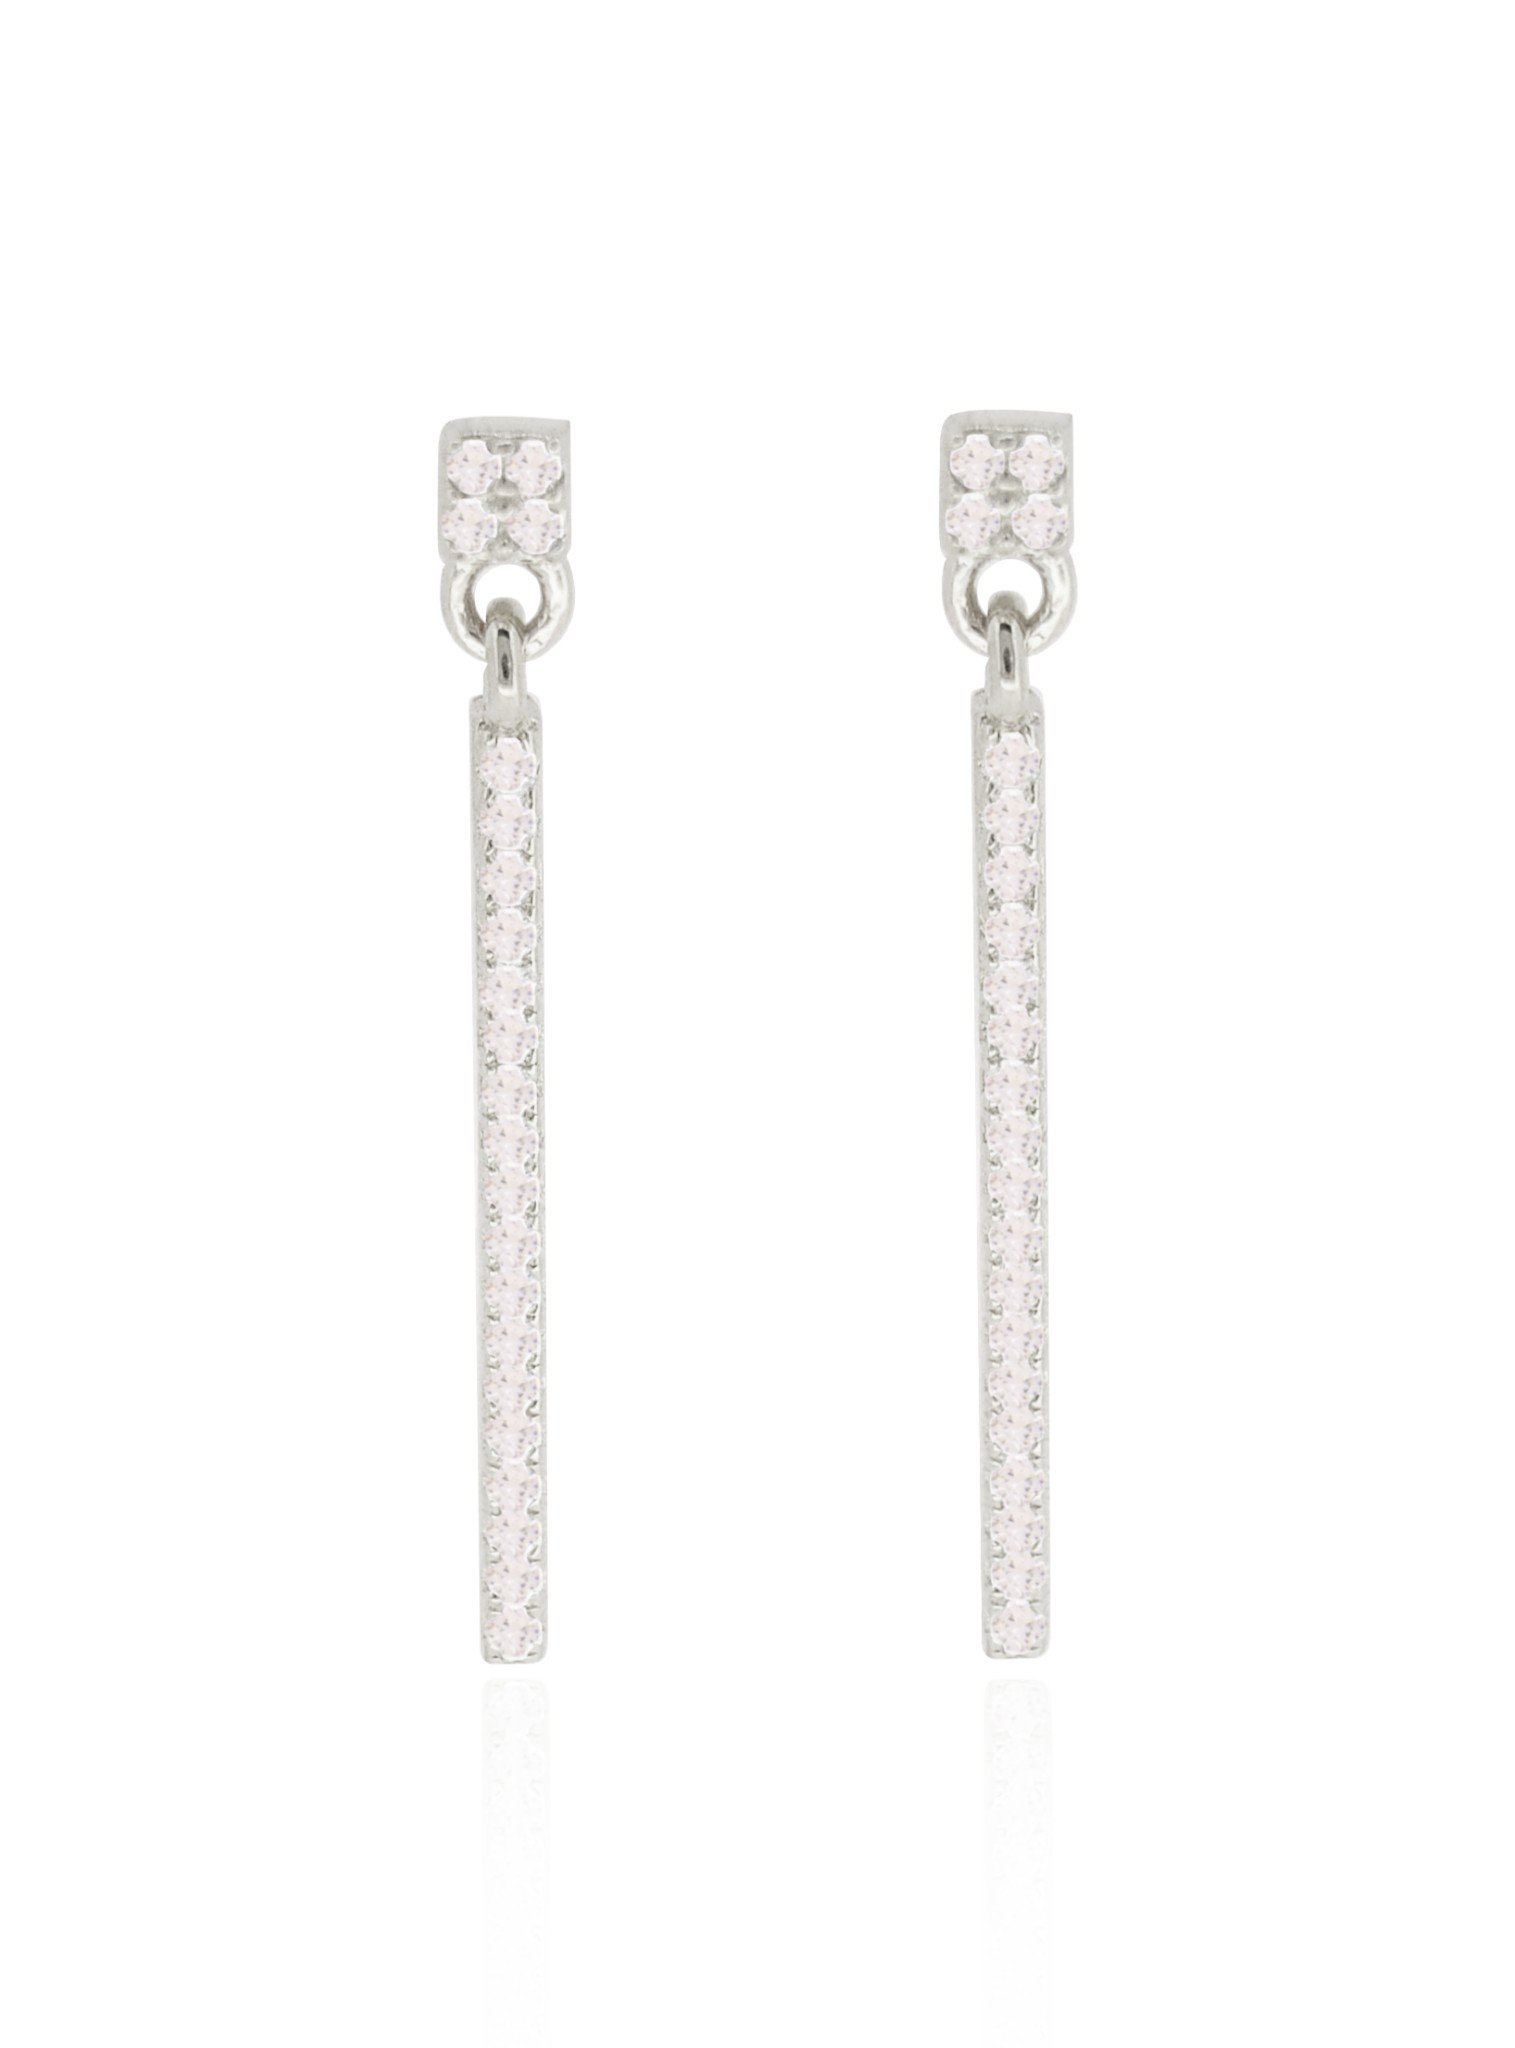 rod fastening back ring push perfection asymmetric exuding and coolness these earrings pin are